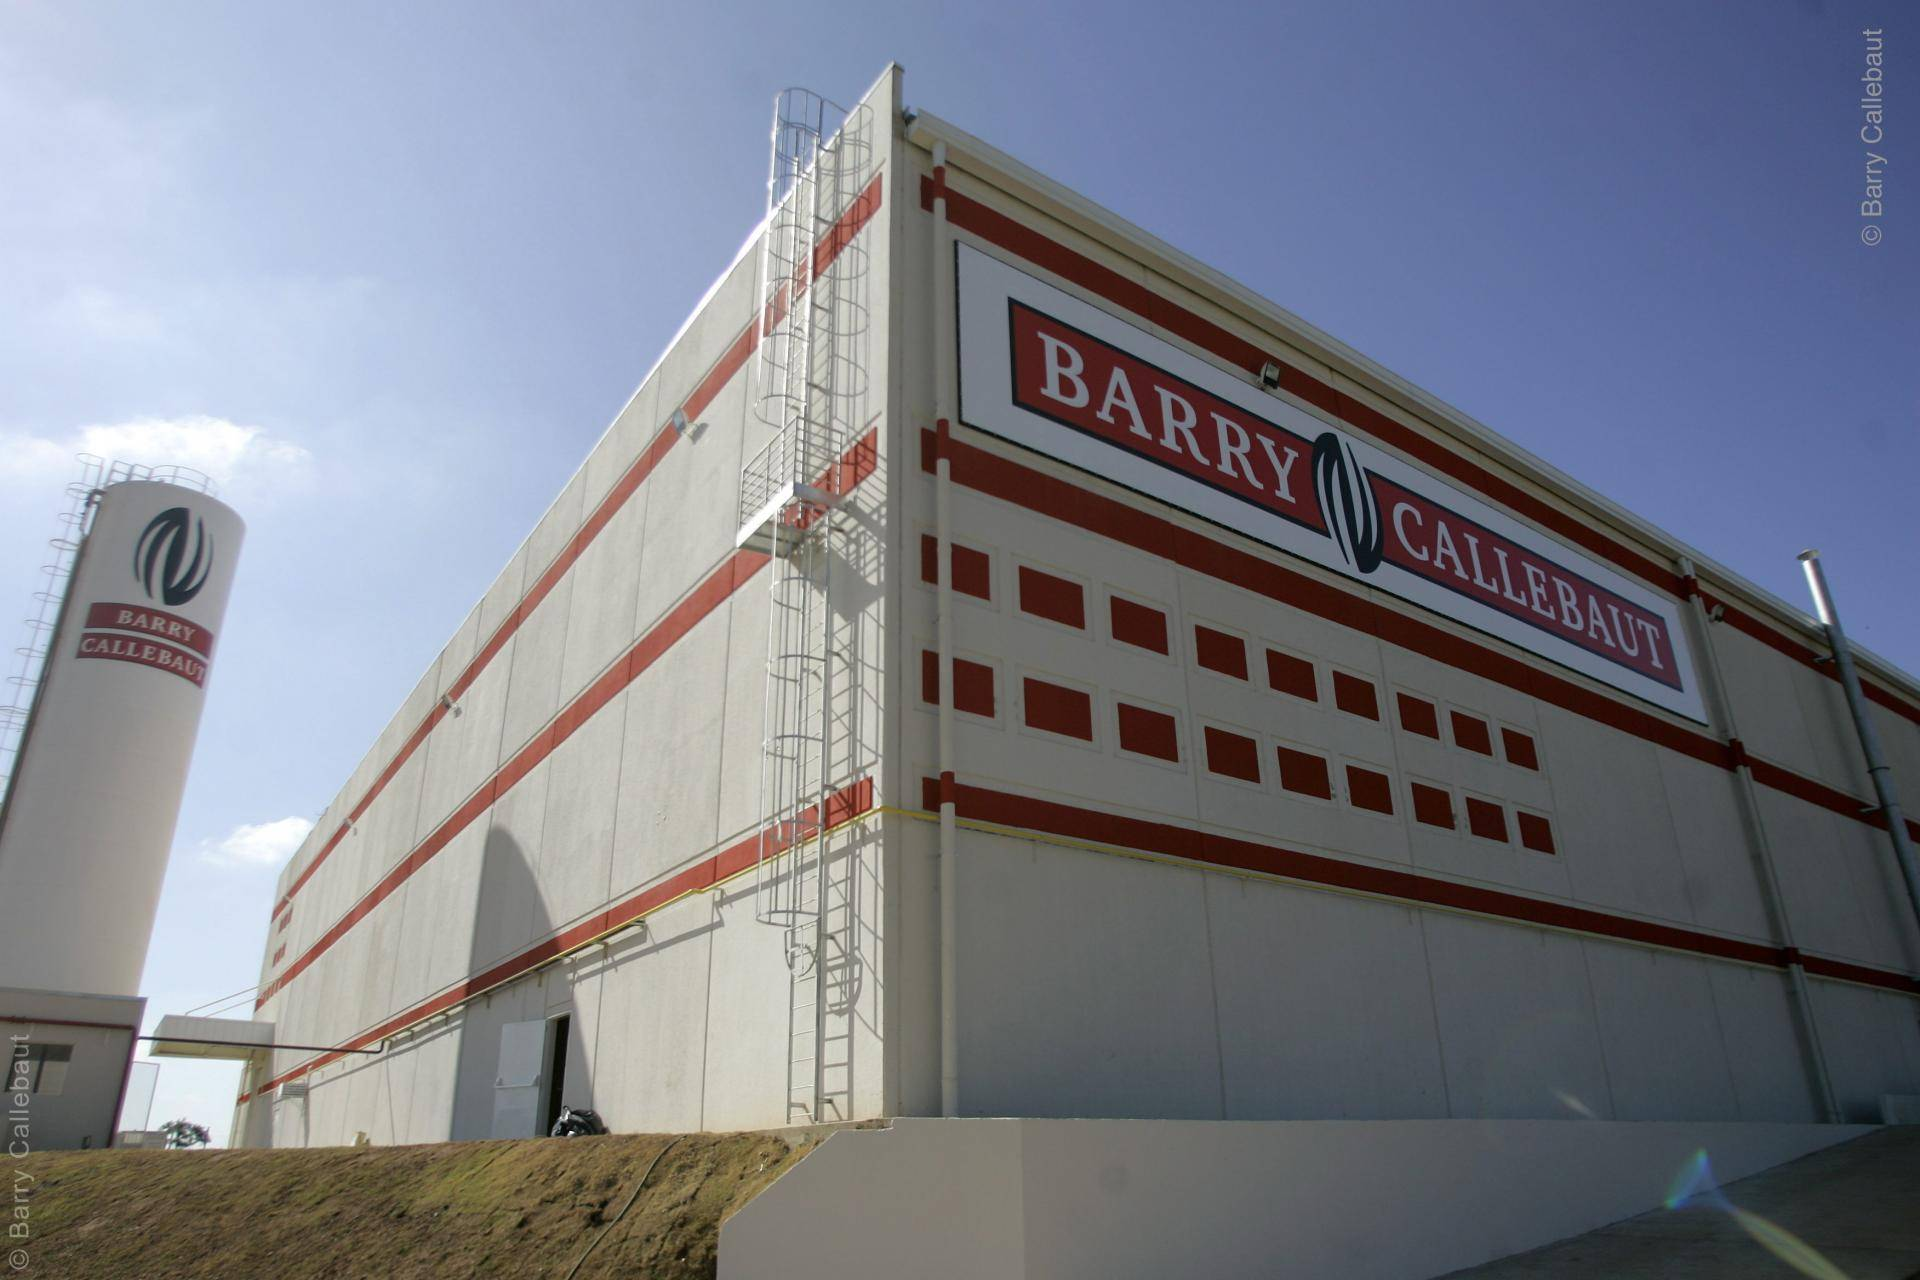 Barry Callebaut envisages expansion in Southeastern Europe